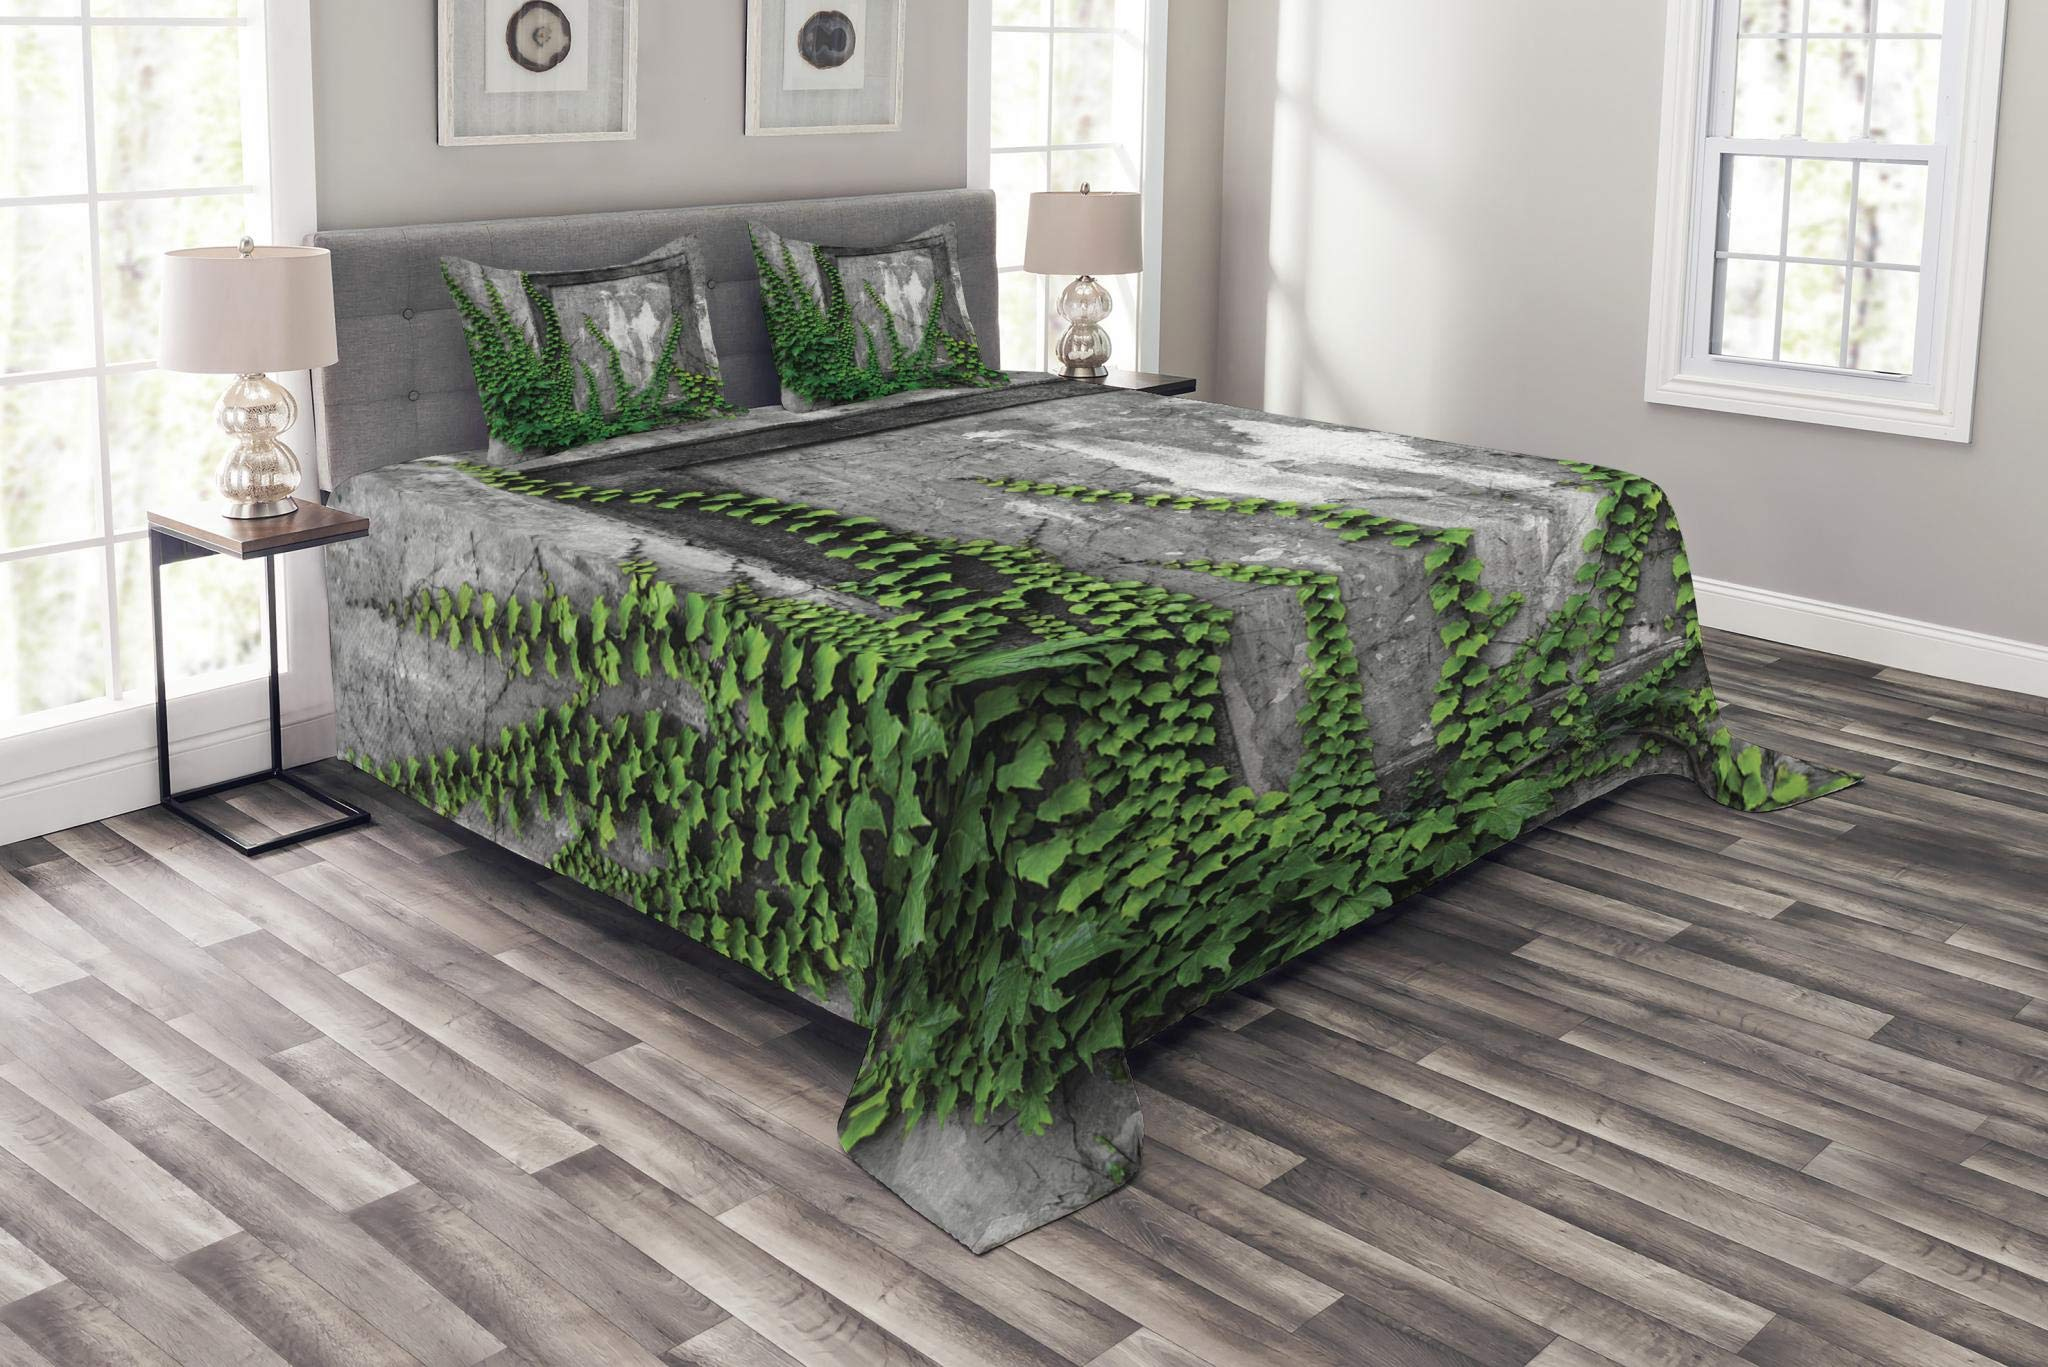 Lunarable Mystic Bedspread Set Queen Size, Ivy Plant on Wall Aged Antique Looking Picture Frame as a Window Creative Art, Decorative Quilted 3 Piece Coverlet Set with 2 Pillow Shams, Green and Grey